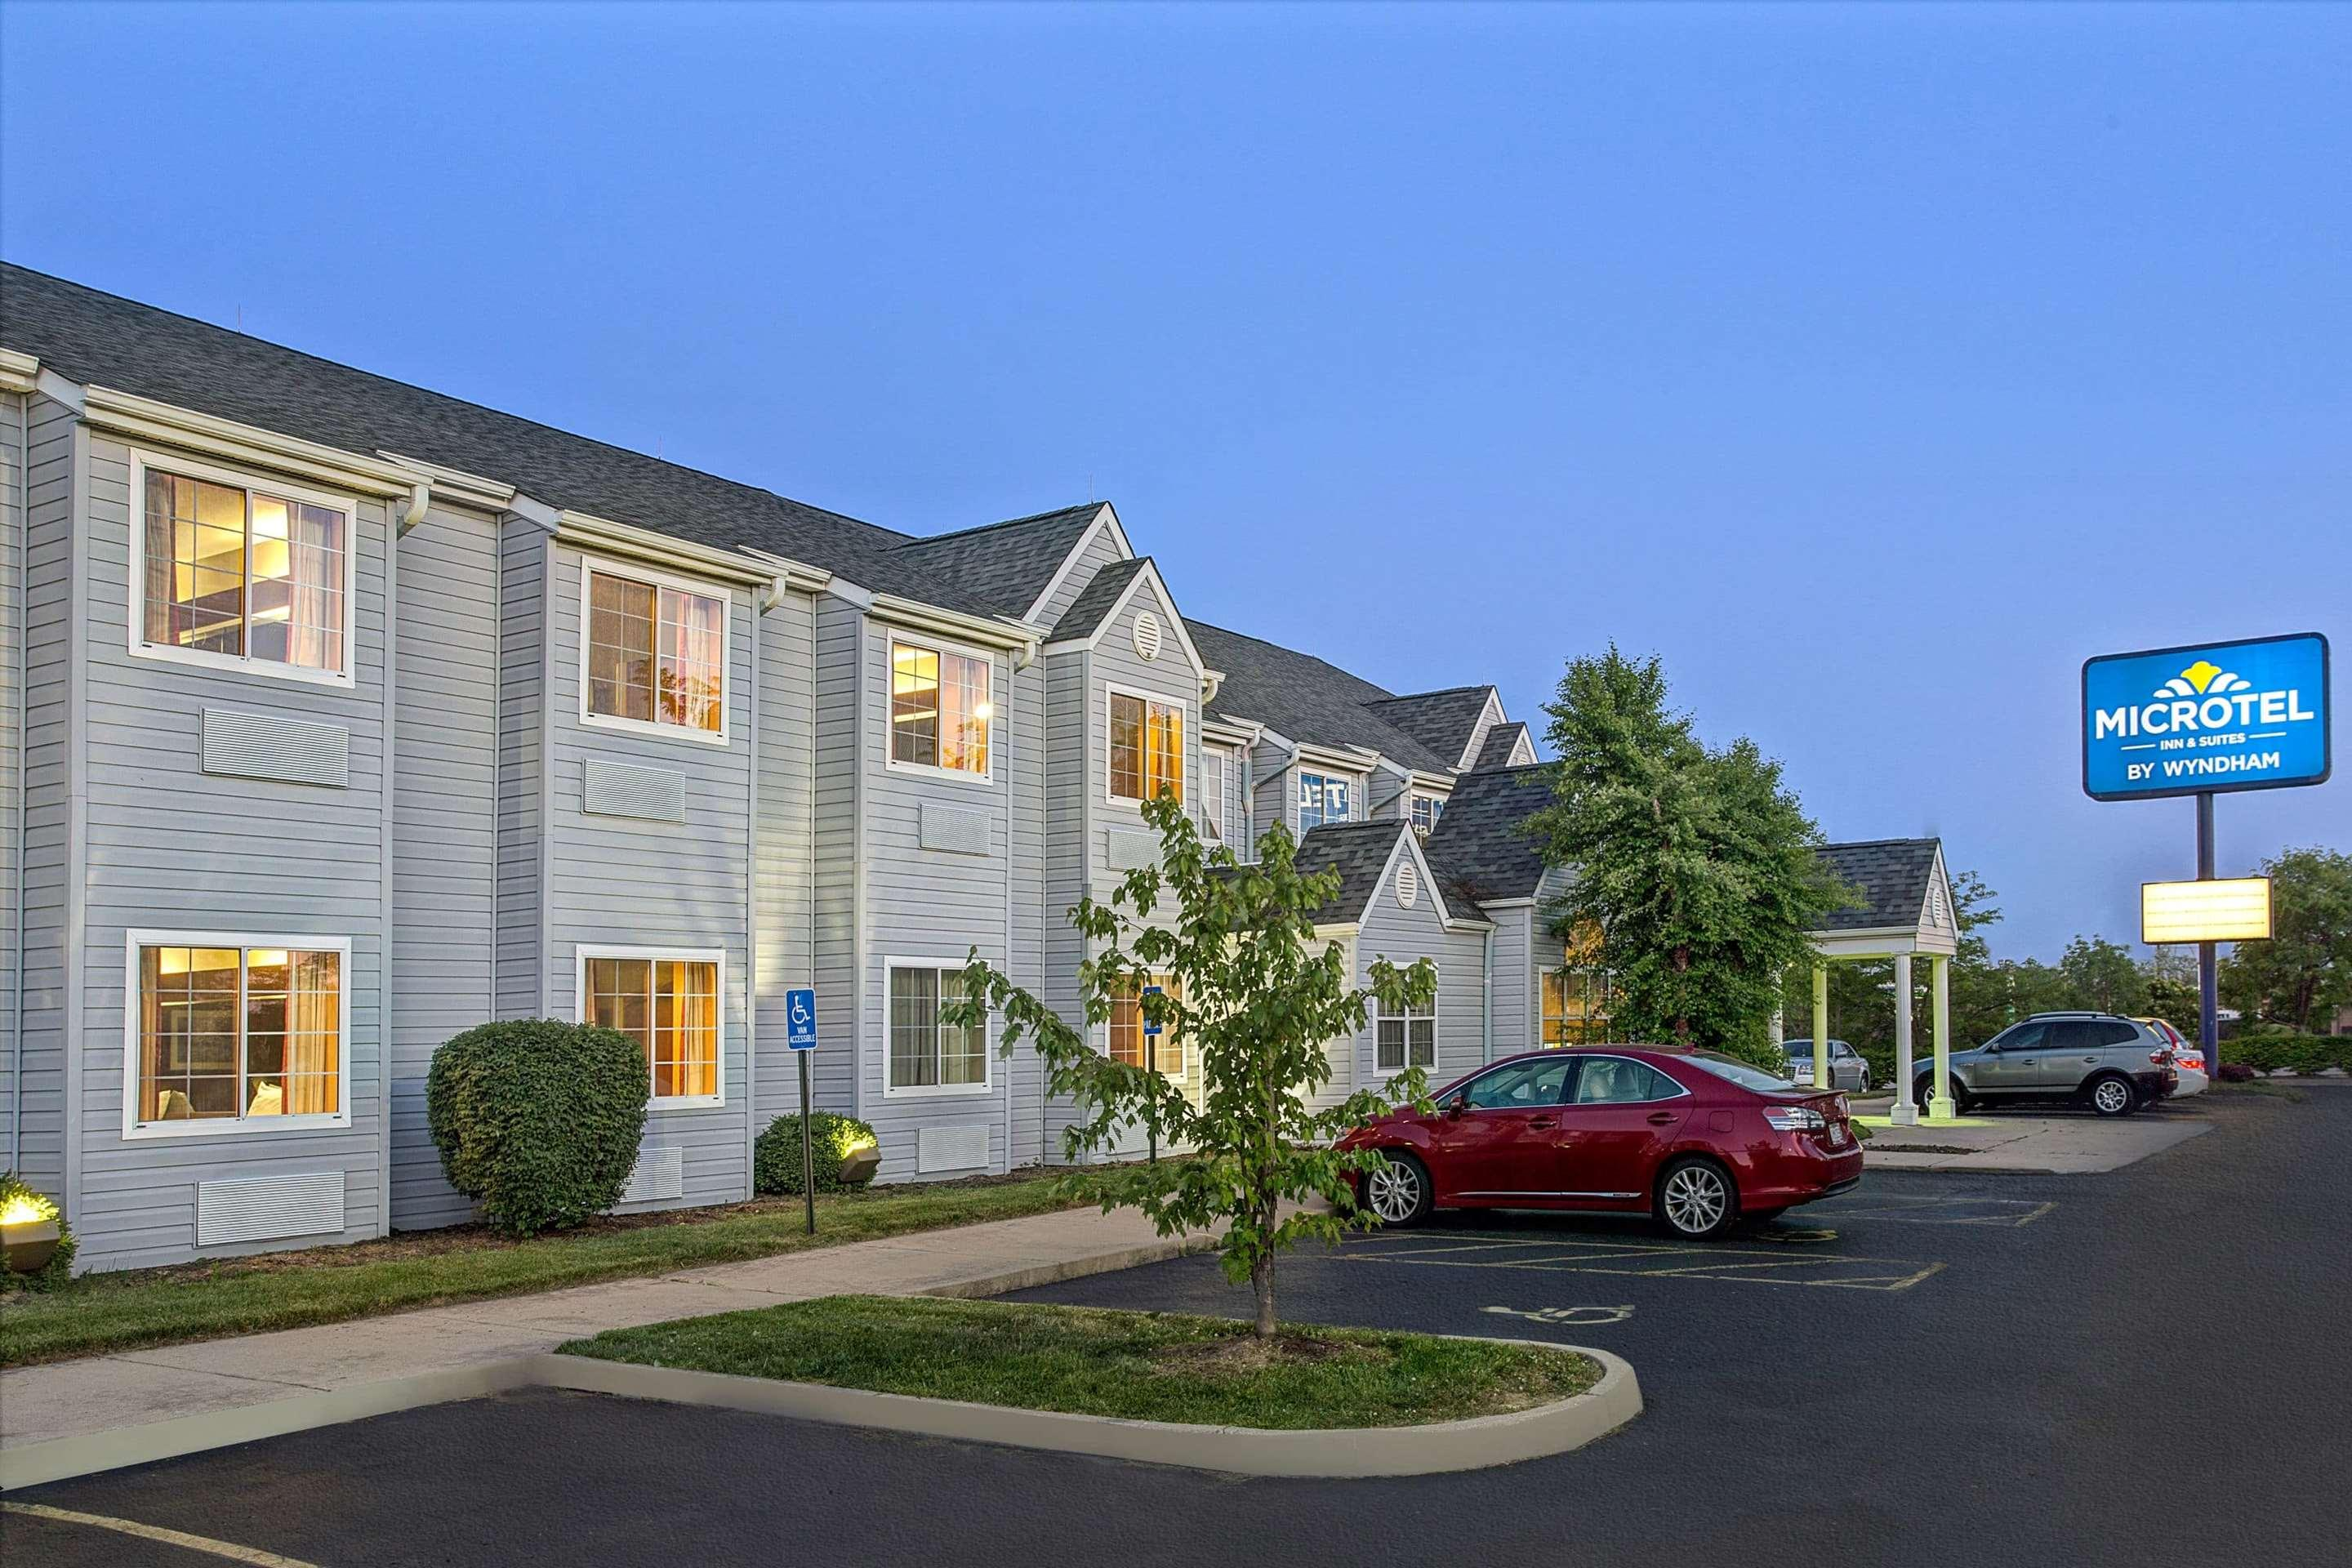 Microtel Inn & Suites by Wyndham Mason/Kings Island